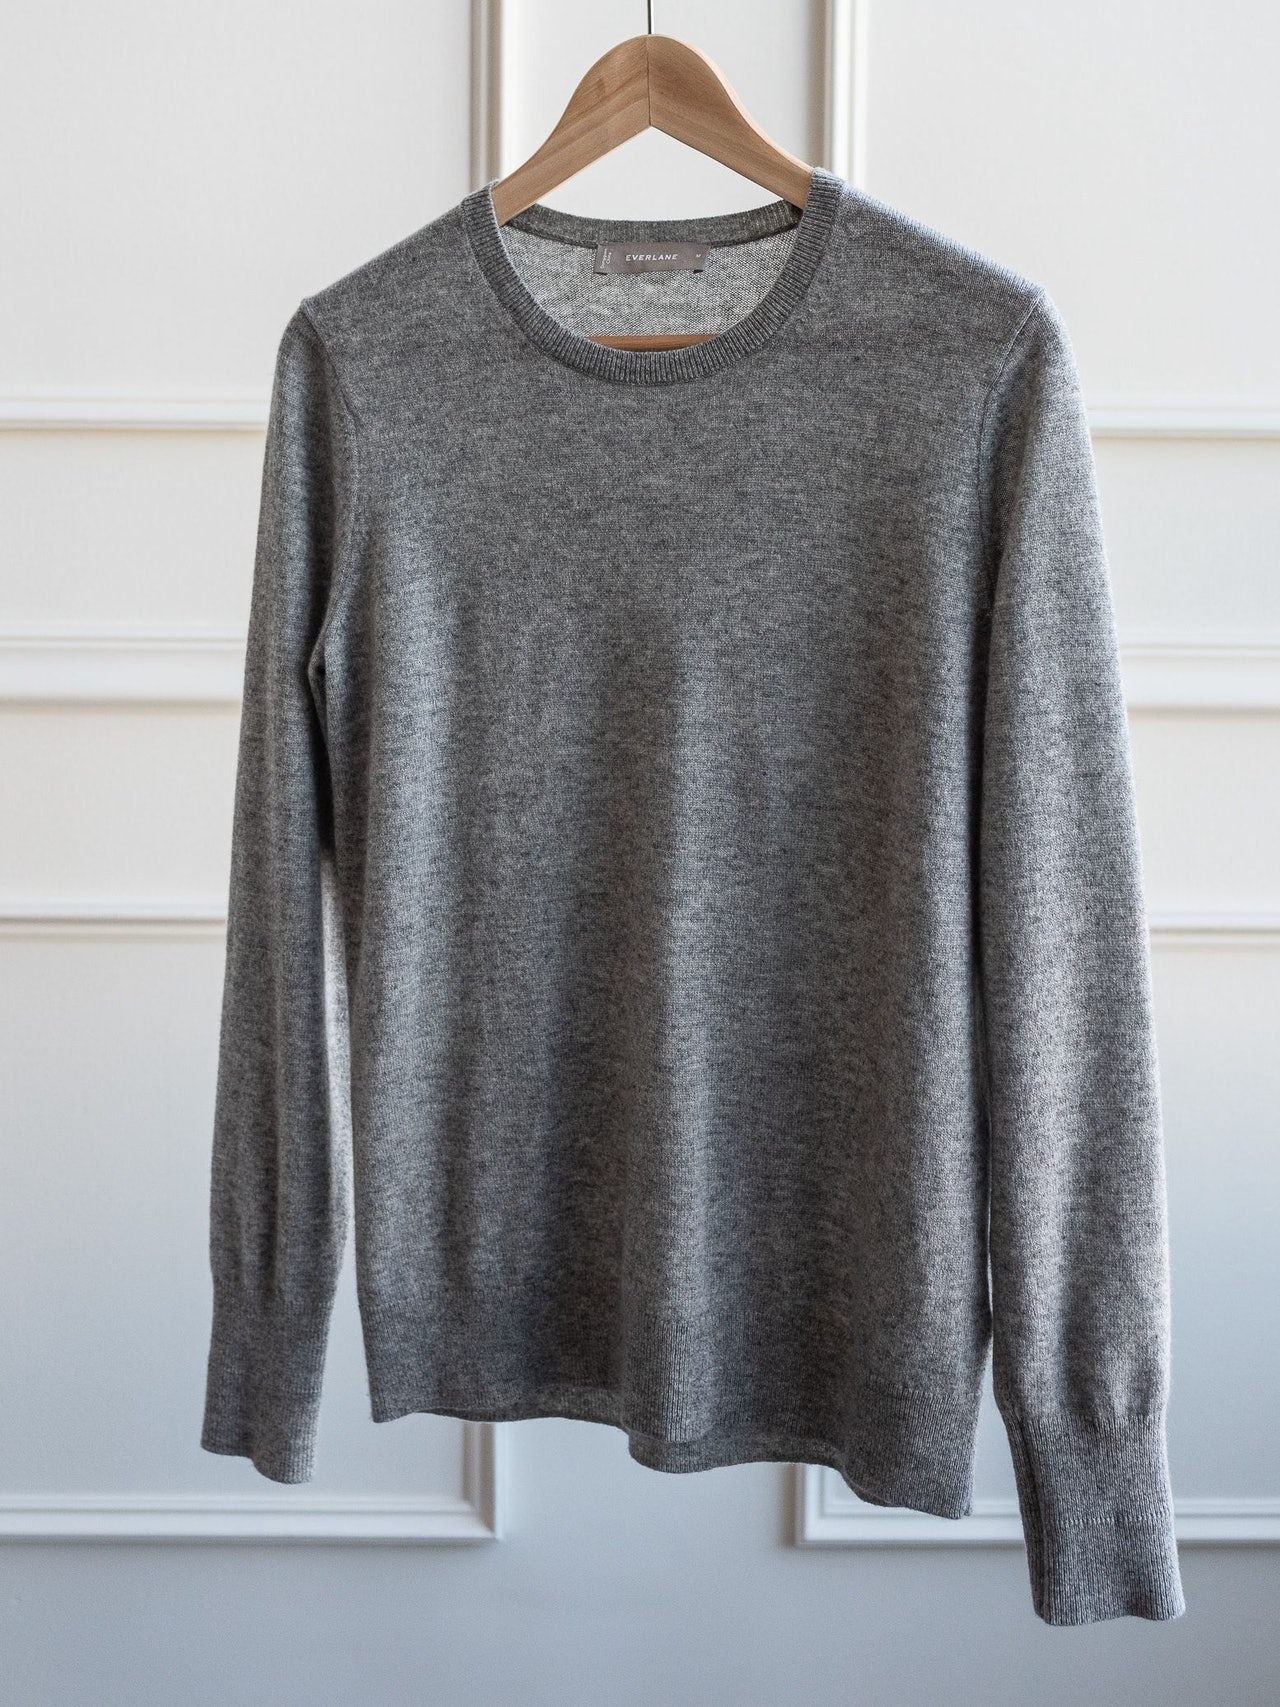 Everlane Cashmere Crew Heather Grey by Conscious by Chloé